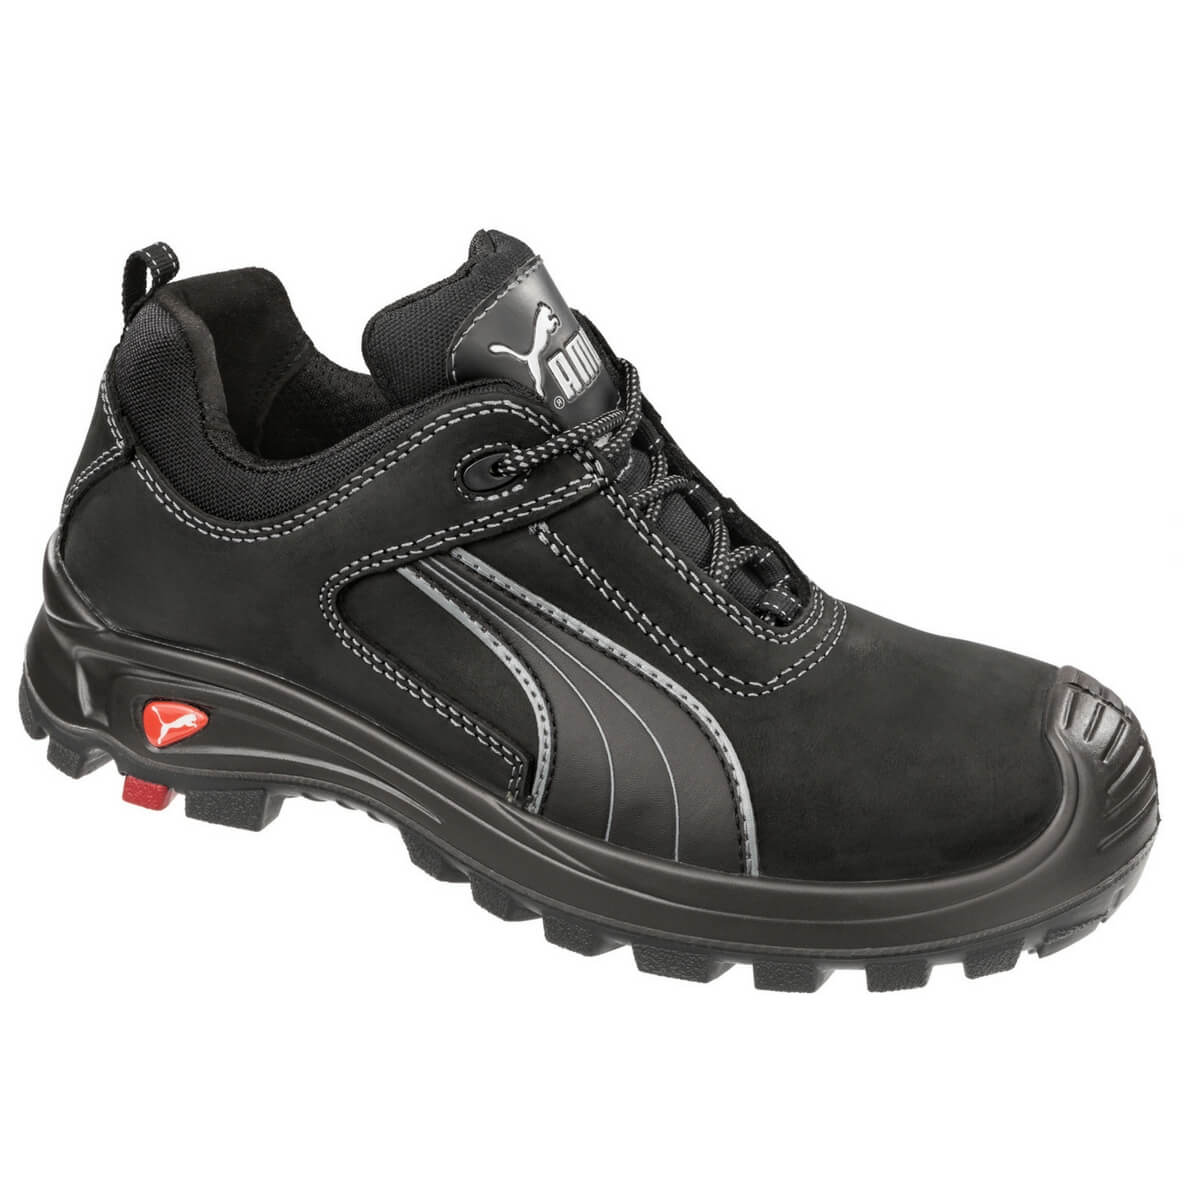 Puma 640427 Cascades Safety Shoes - Badger Australia 89736e257